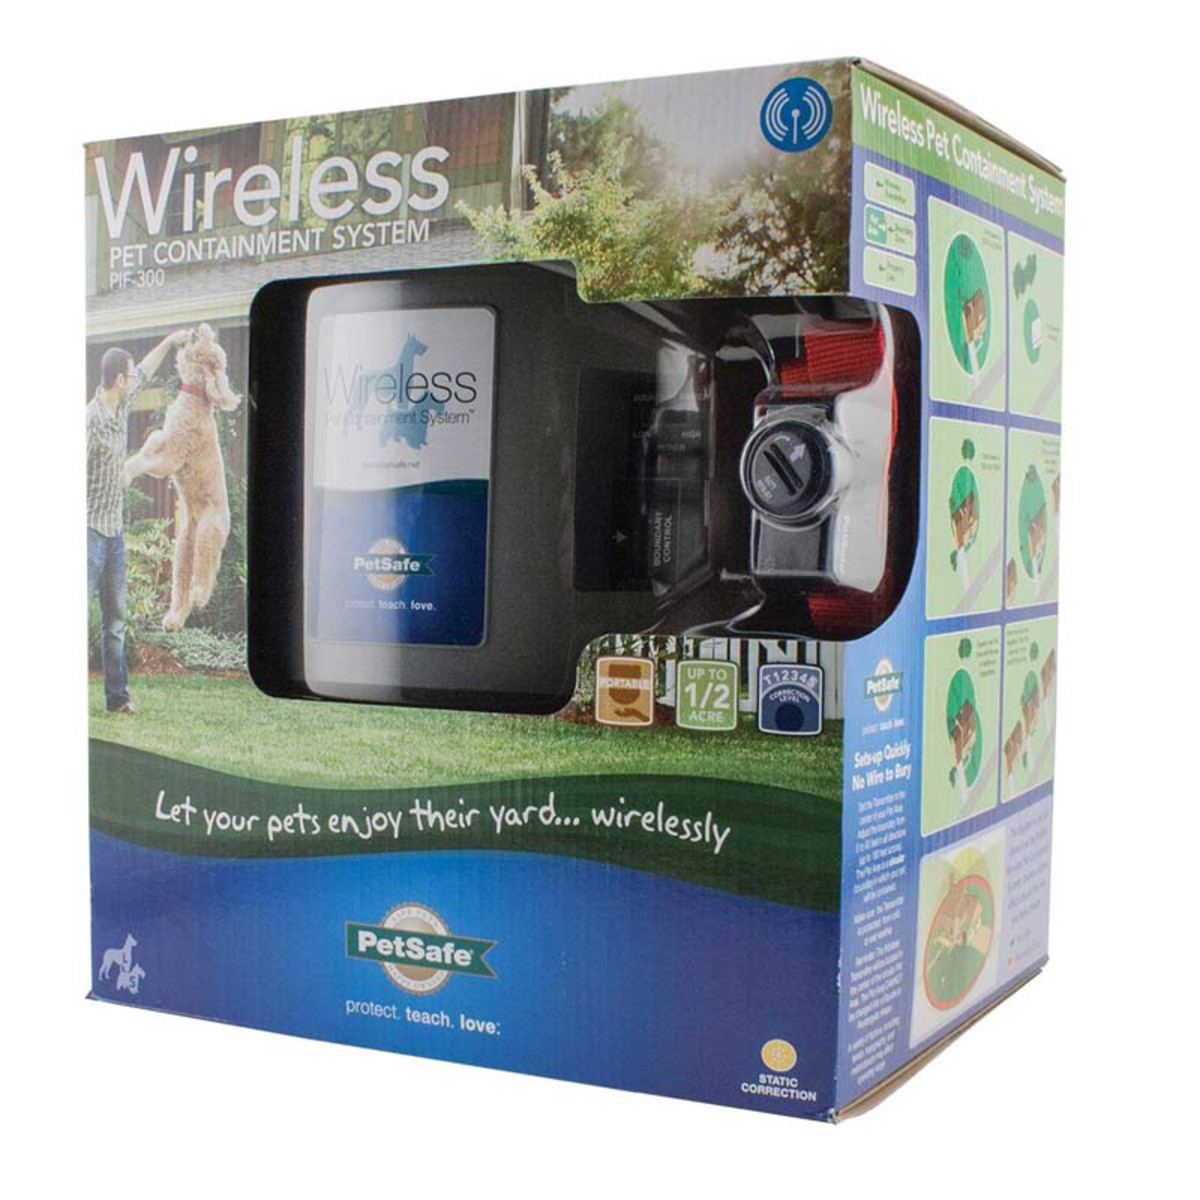 PetSafe Wireless Pet Contamination System